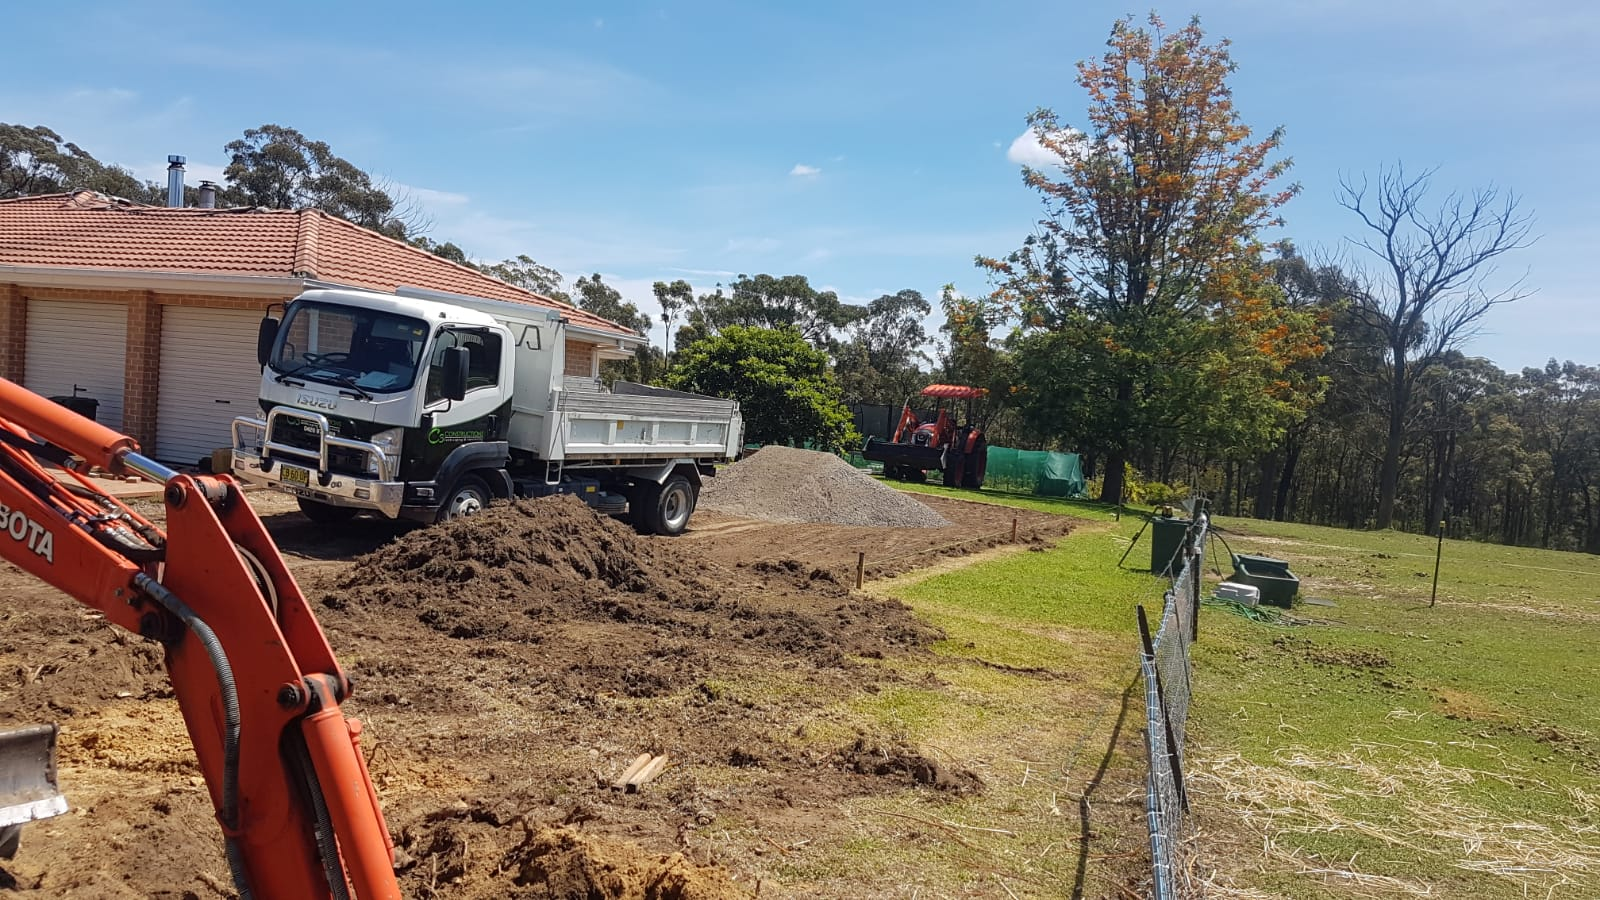 Sydney concretors excavating for concrete installlation